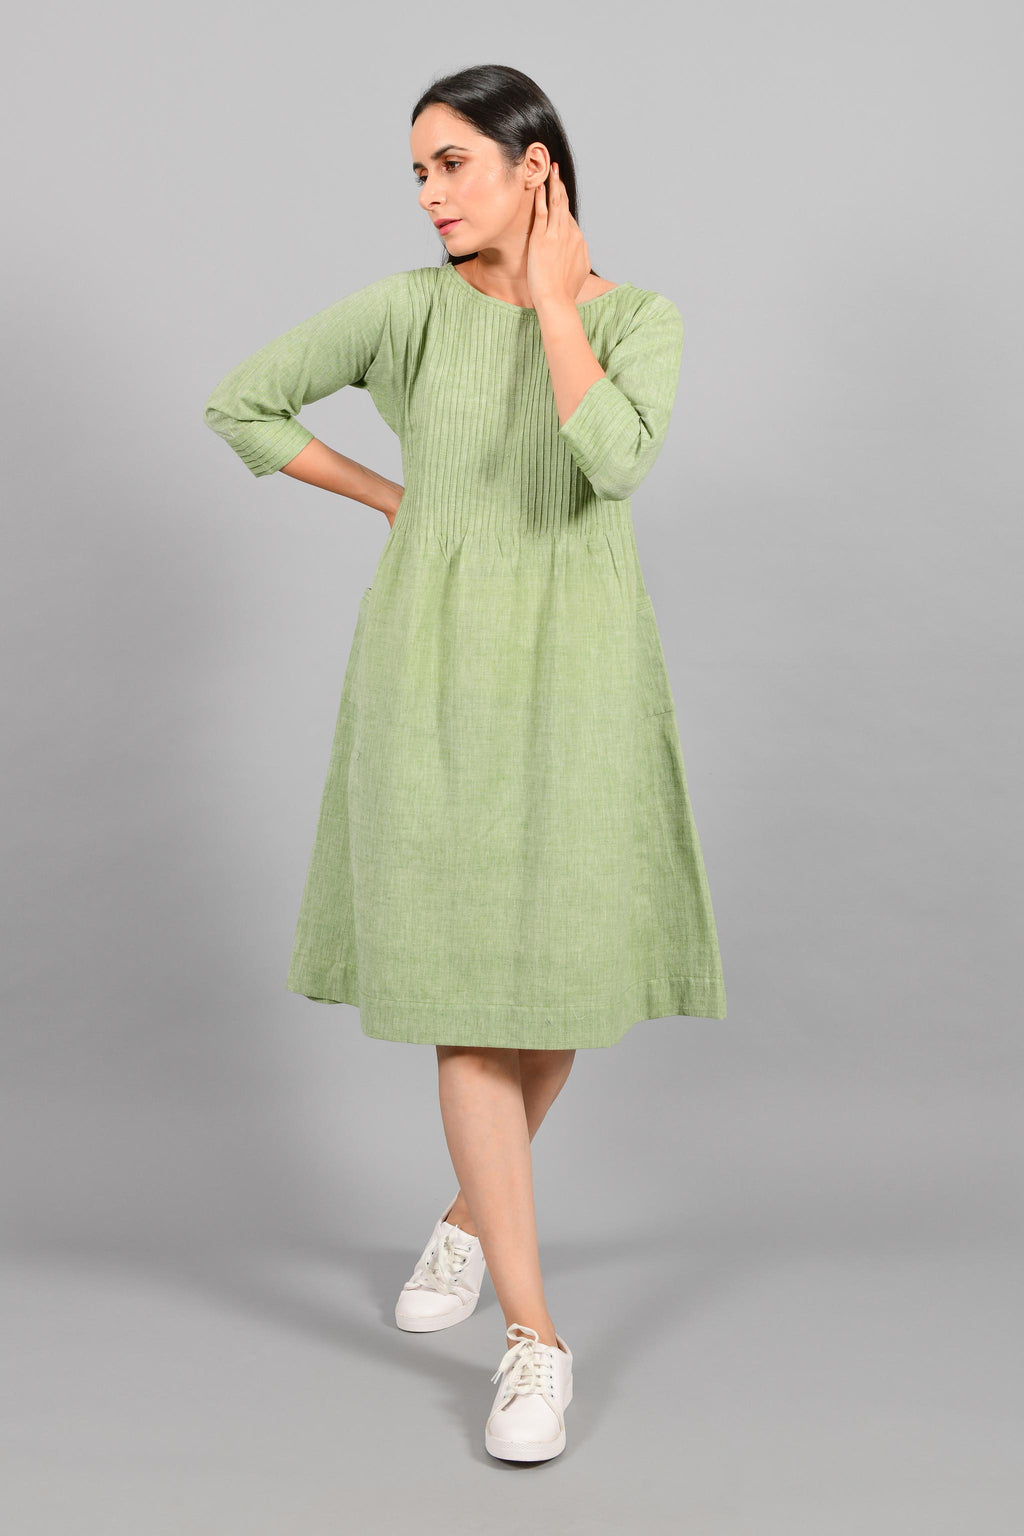 Front stylised pose of an Indian female womenswear fashion model in a olive green chambray handspun and handwoven khadi cotton dress-kurta with pintucks on front by Cotton Rack.